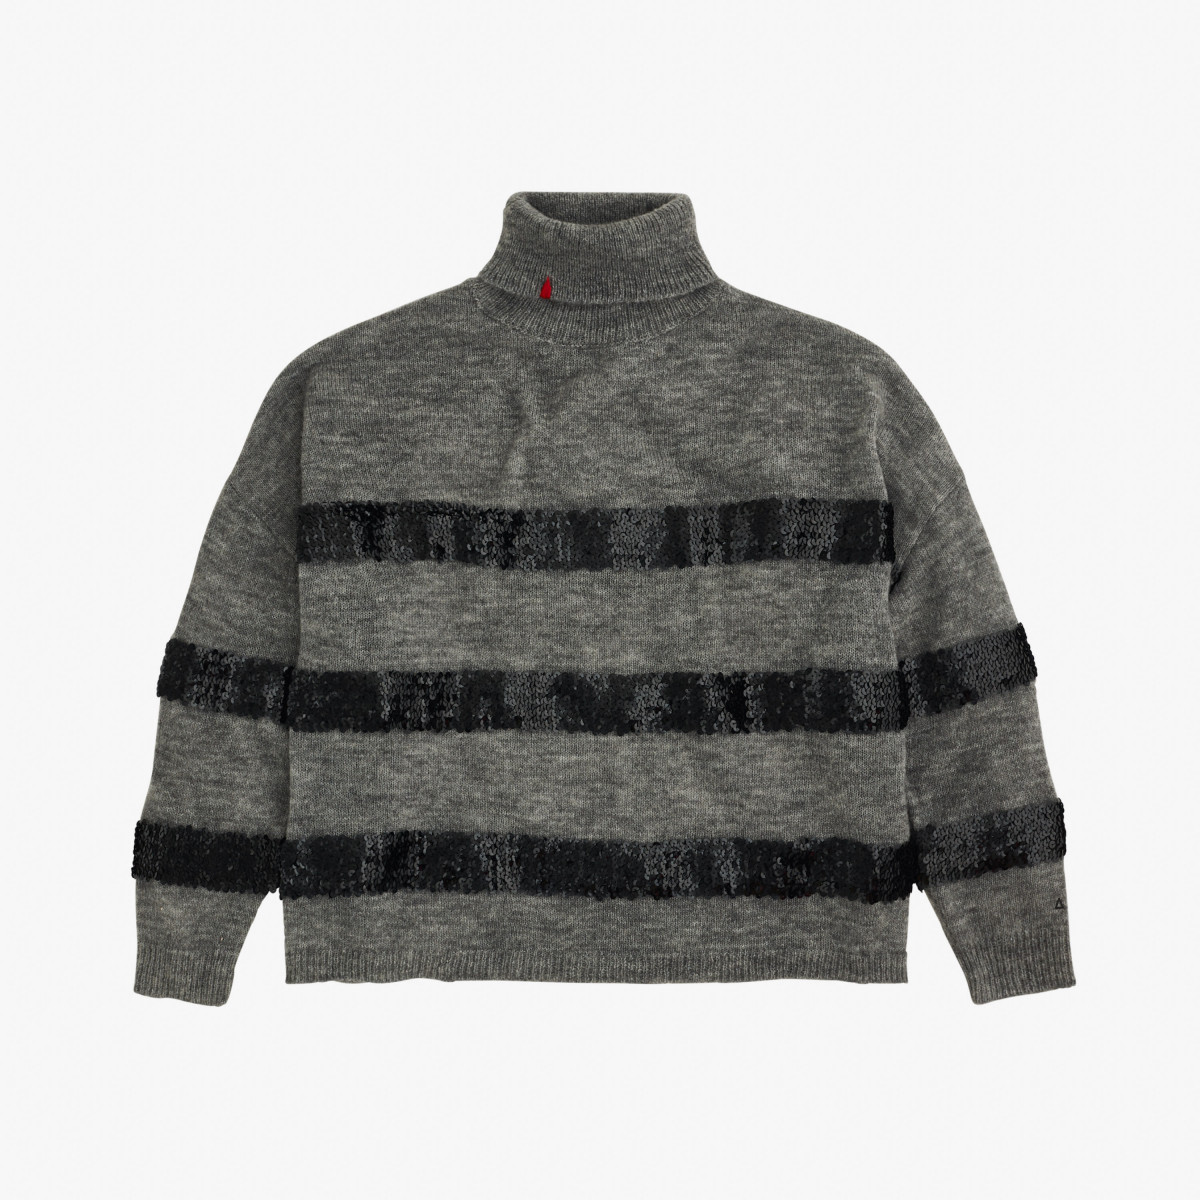 WOOL TURTLE PAILLETTES L/S GRIGIO MEDIO